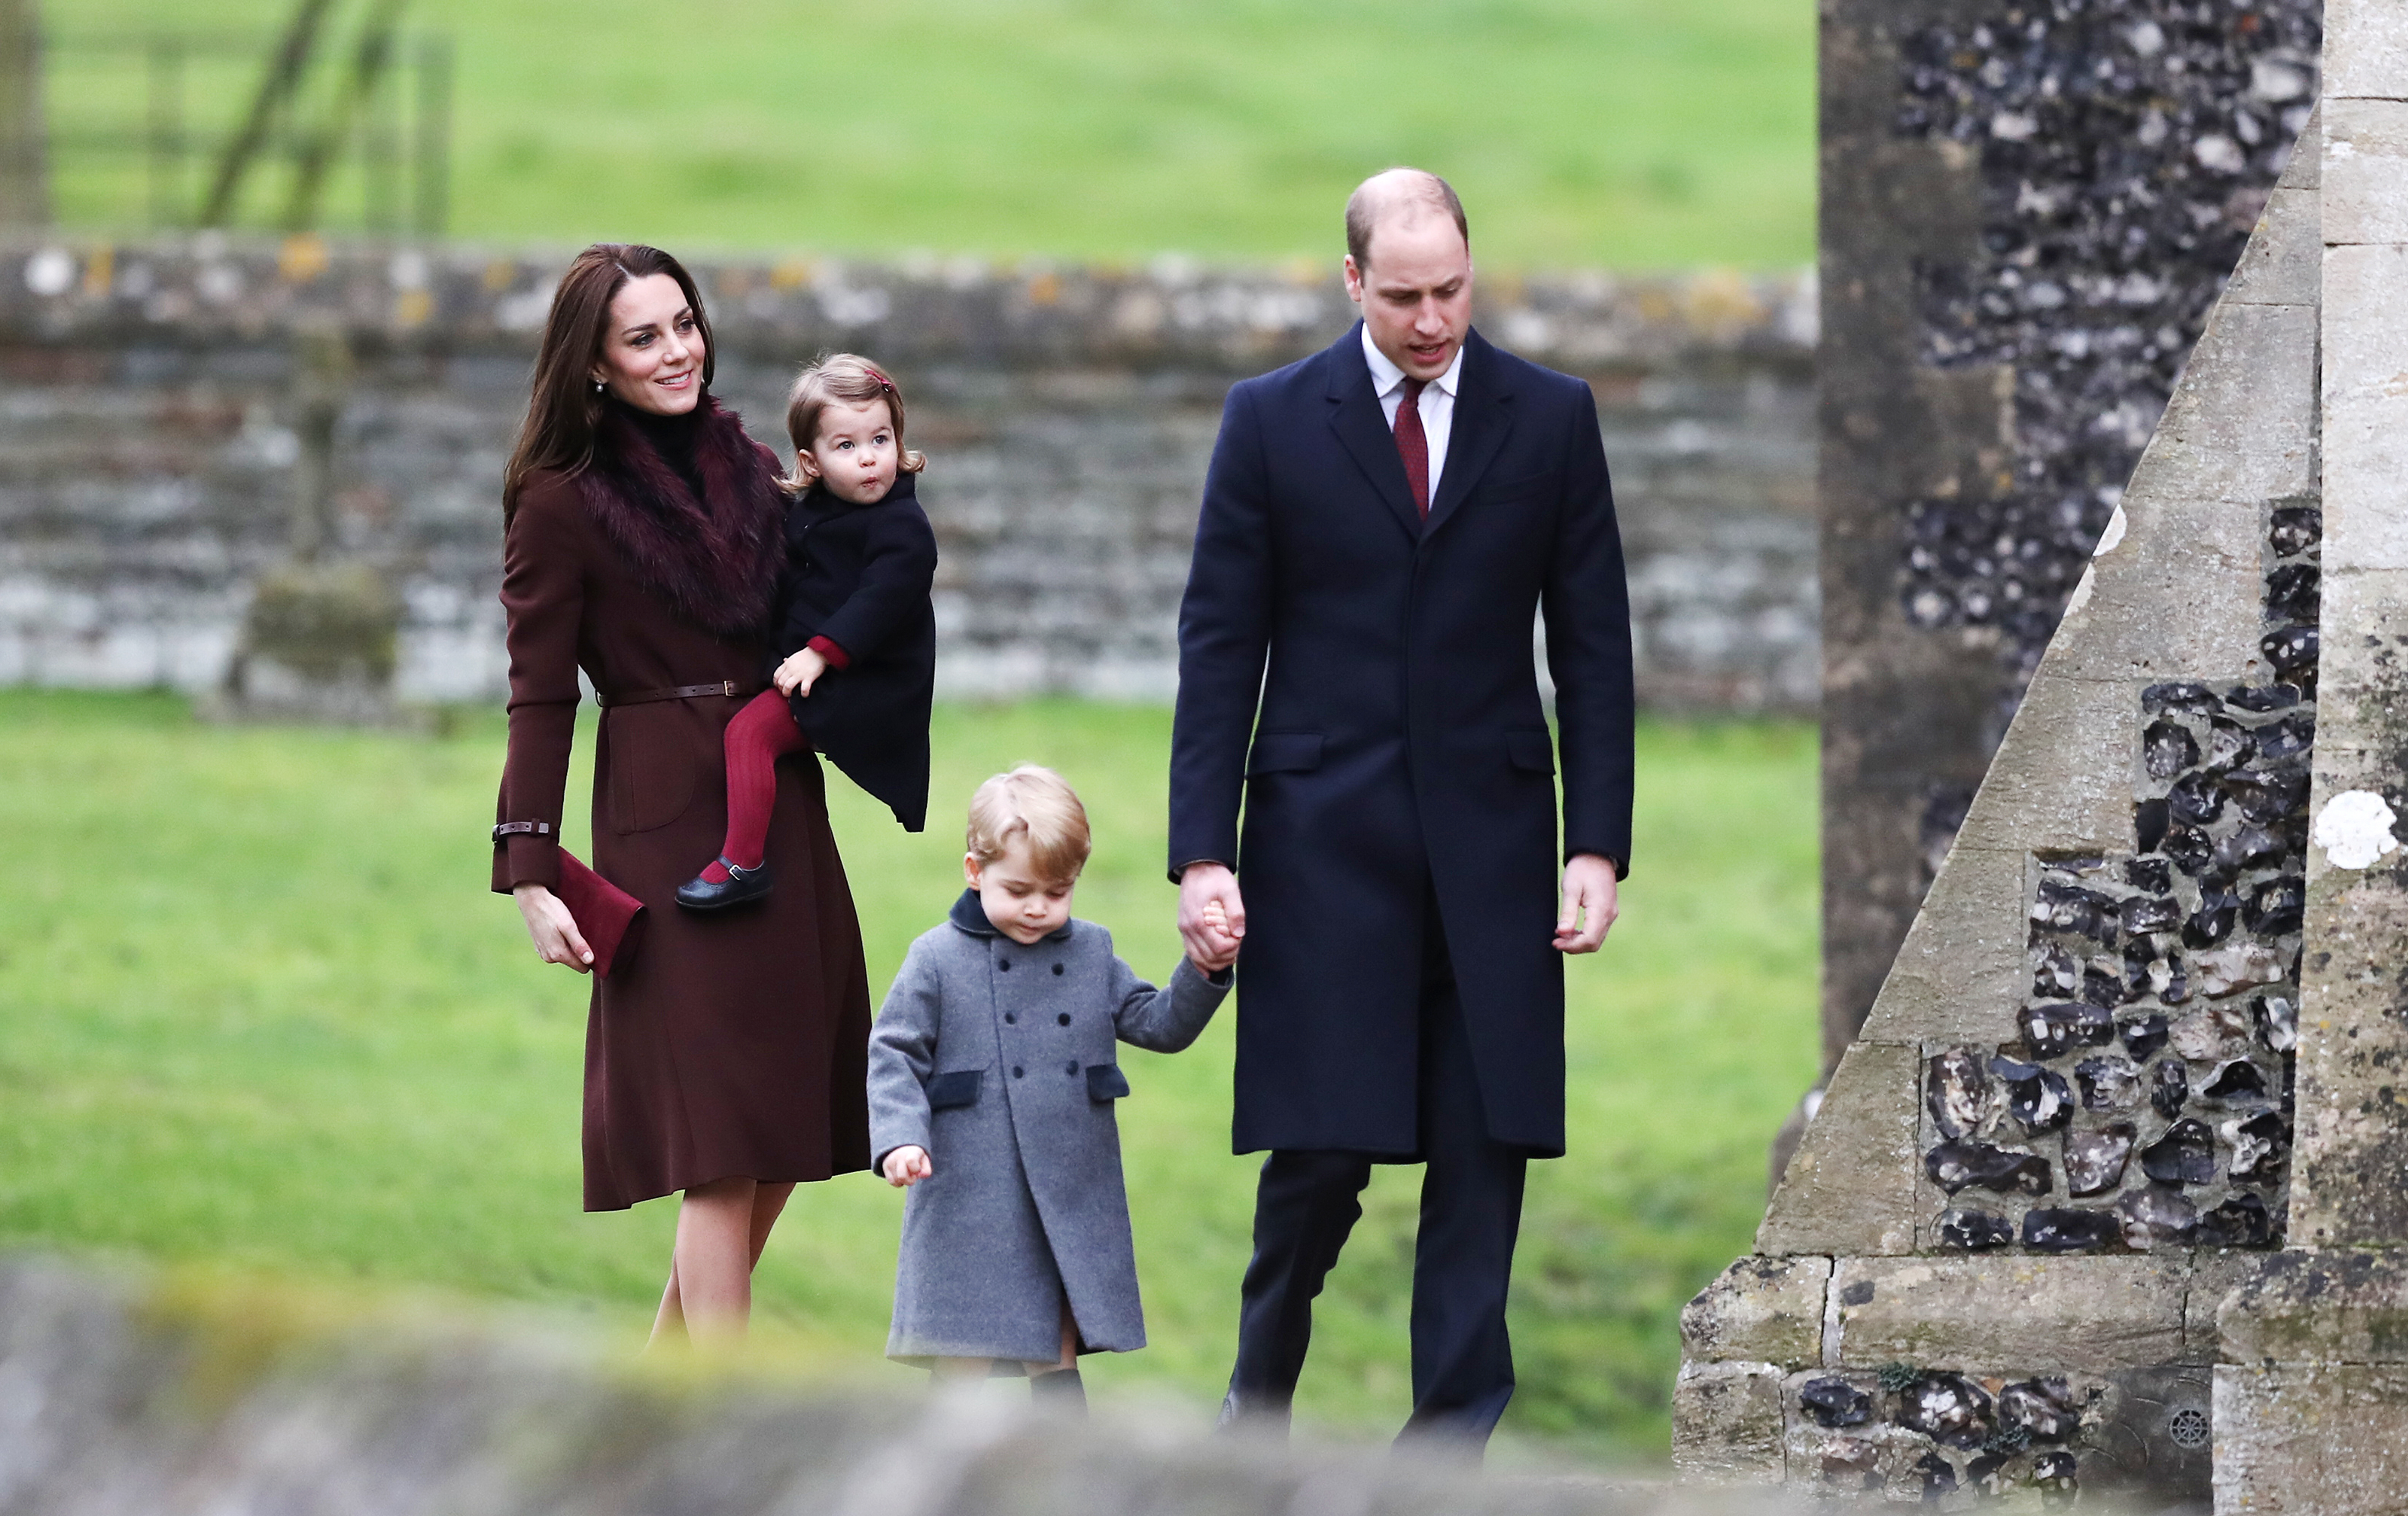 Catherine, Duchess of Cambridge and Prince William, Duke of Cambridge, Prince George of Cambridge and Princess Charlotte of Cambridge arrive to attend the service at St Mark's Church on Christmas Day in Bucklebury, Berkshire on Dec. 25, 2016 .  (Photo by Andrew Matthews - WPA Pool/Getty Images)